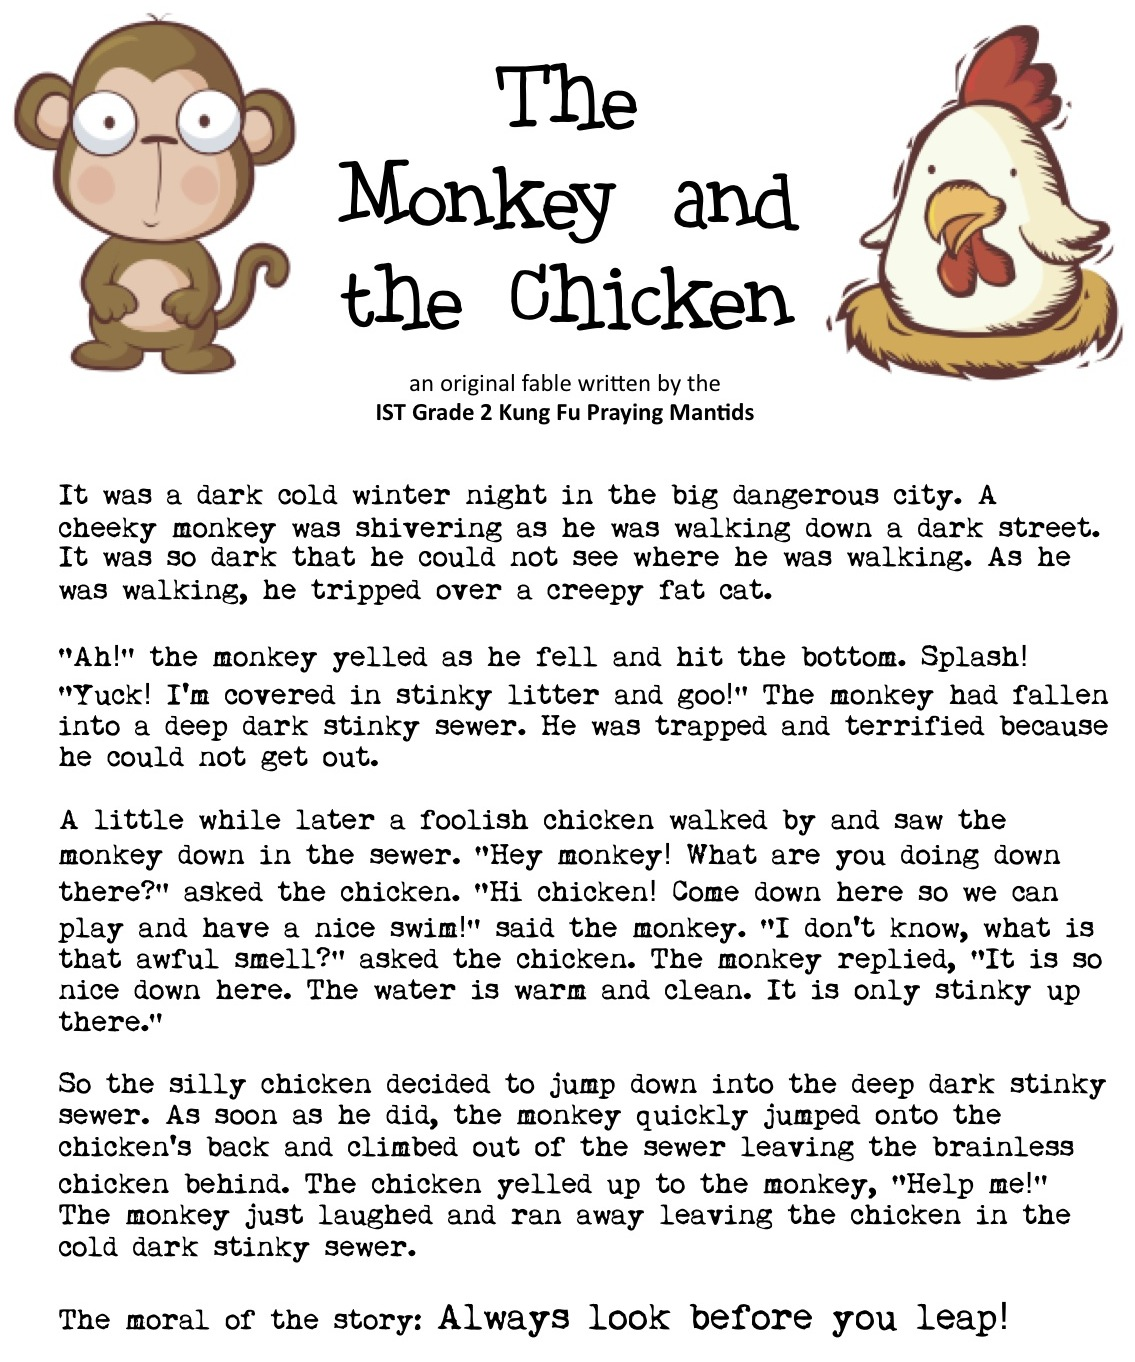 https://istgrade2.wordpress.com/files/2009/11/monkey-and-chicken-fable1.jpg